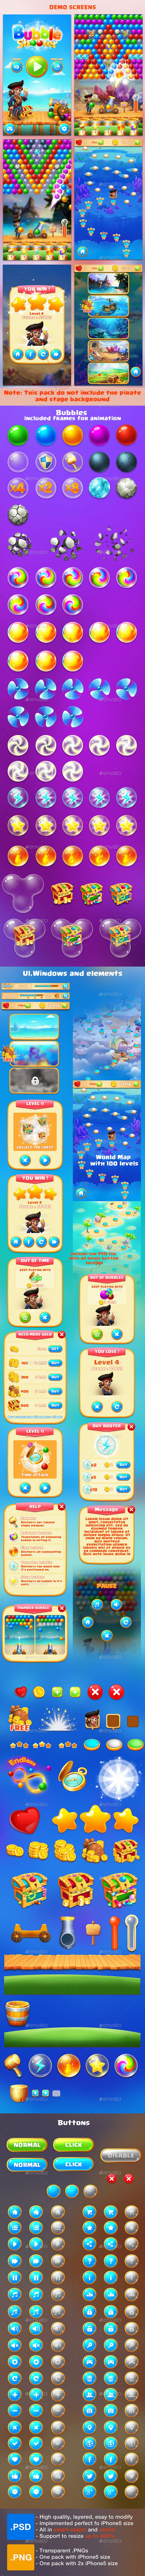 Bubble Shooter - Game Assets A complete set of graphical to build 2D Bubble shooter video games.Suitable for casual, all-ages, kids, or girls games.  - 5 different bubbles, included special bubbles : fire, lightning, start, rainbow…, – 5 coin-pack icons for shop - 40 iconic buttons - World-Map with 100 levels , Included PSD with location of all levels buttons - All elements needed for UI, HUD … - All assets in vector and Smart-object , So it's customizable and resizeable (Up to 400% still…